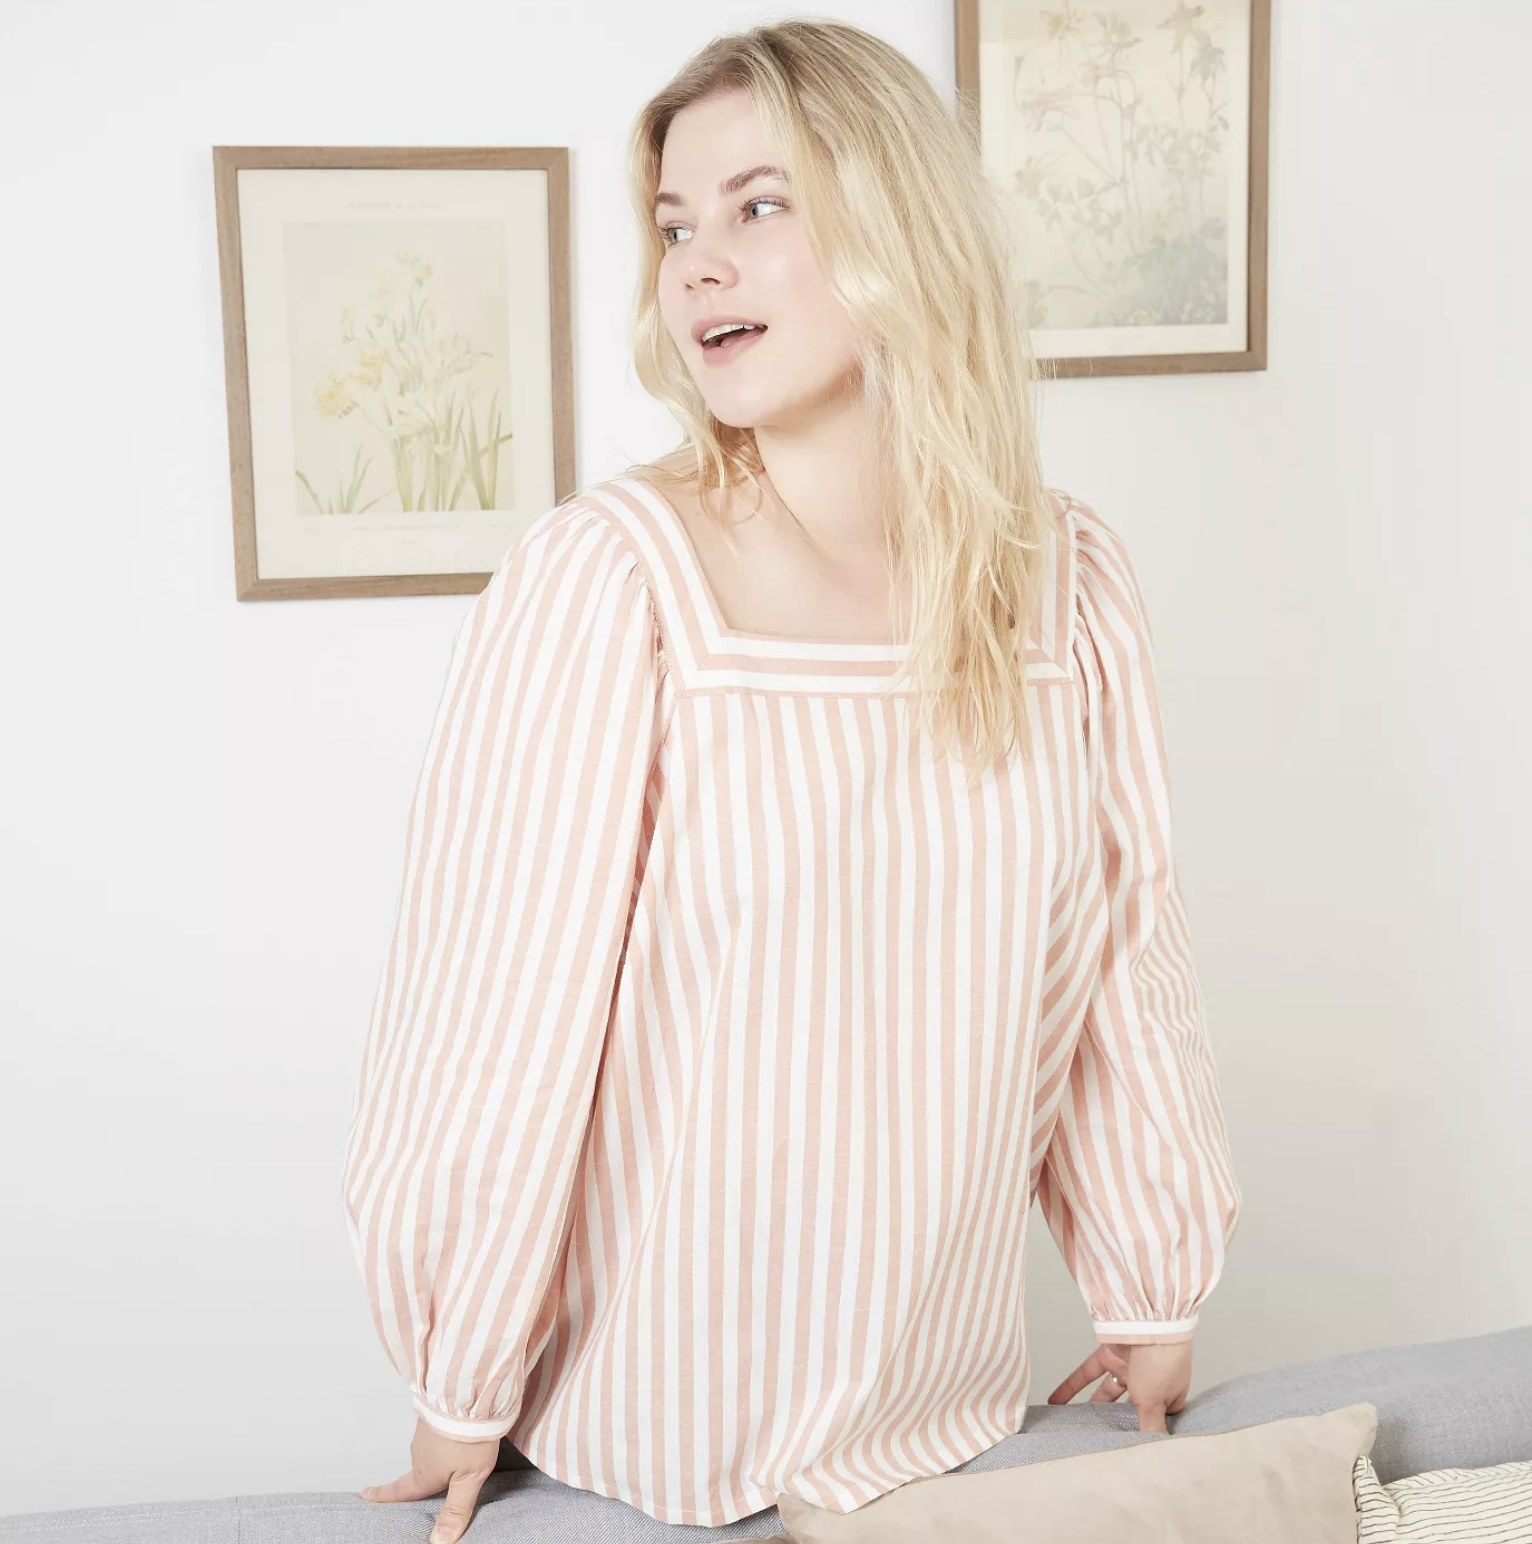 model wearing pink and white striped blouse